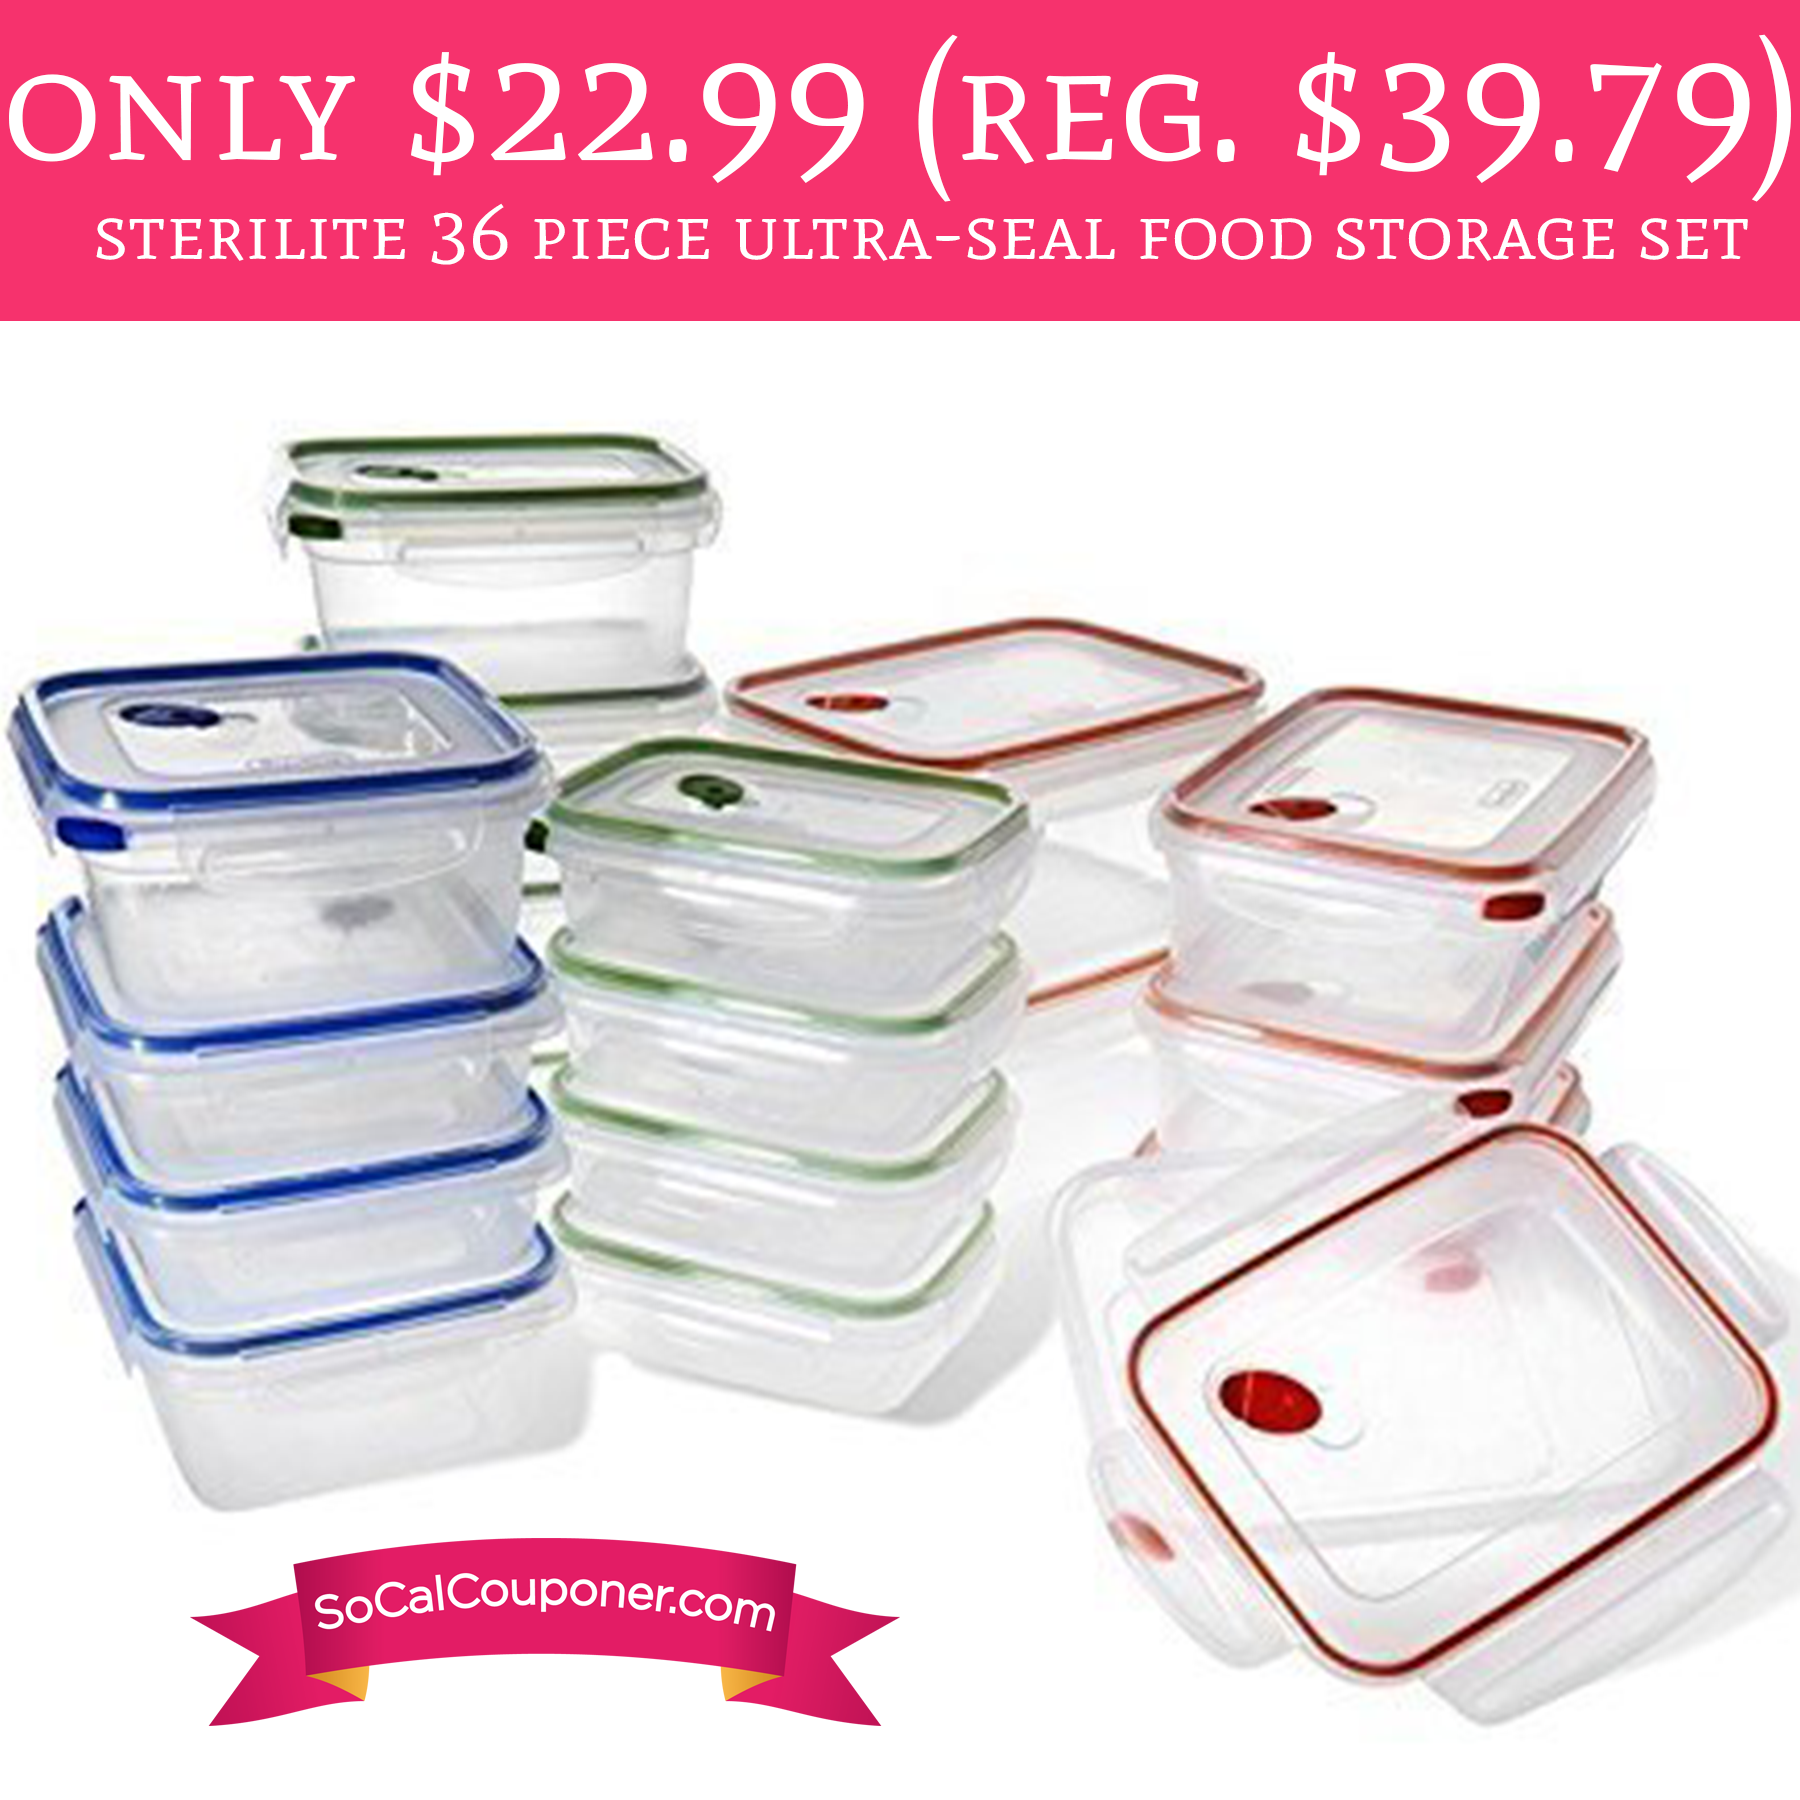 Hurry on over to Target and grab a few 18 gallon Sterilite Storage Totes. This week they are on sale for only $4 and include super cool Halloween colors for ...  sc 1 st  Deal Hunting Babe & HOT!! Only $4 Sterilite Storage Tote @ Target until 10/22 - Deal ...